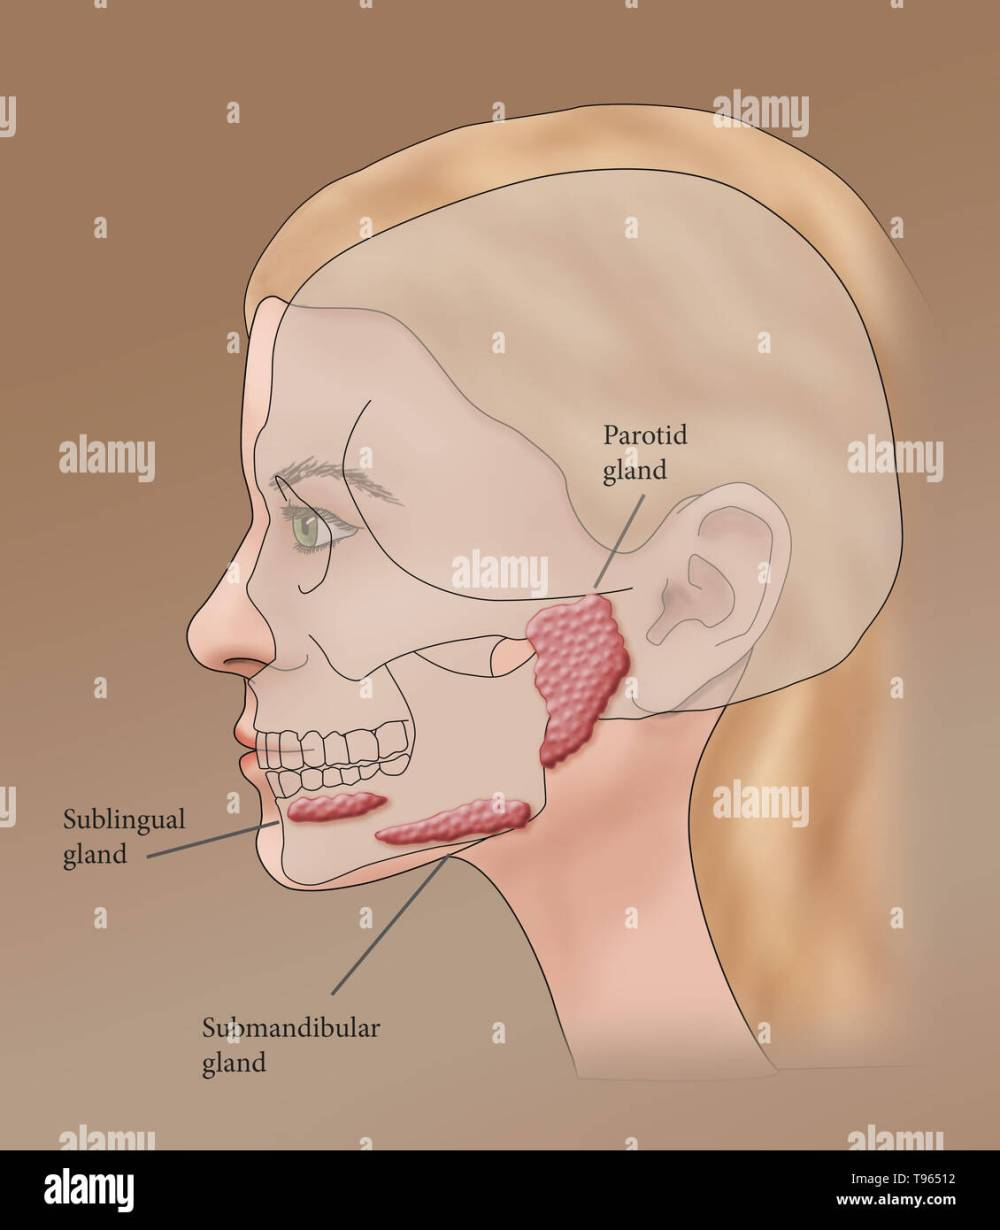 medium resolution of illustration showing the location of the salivary glands in a female profile stock image